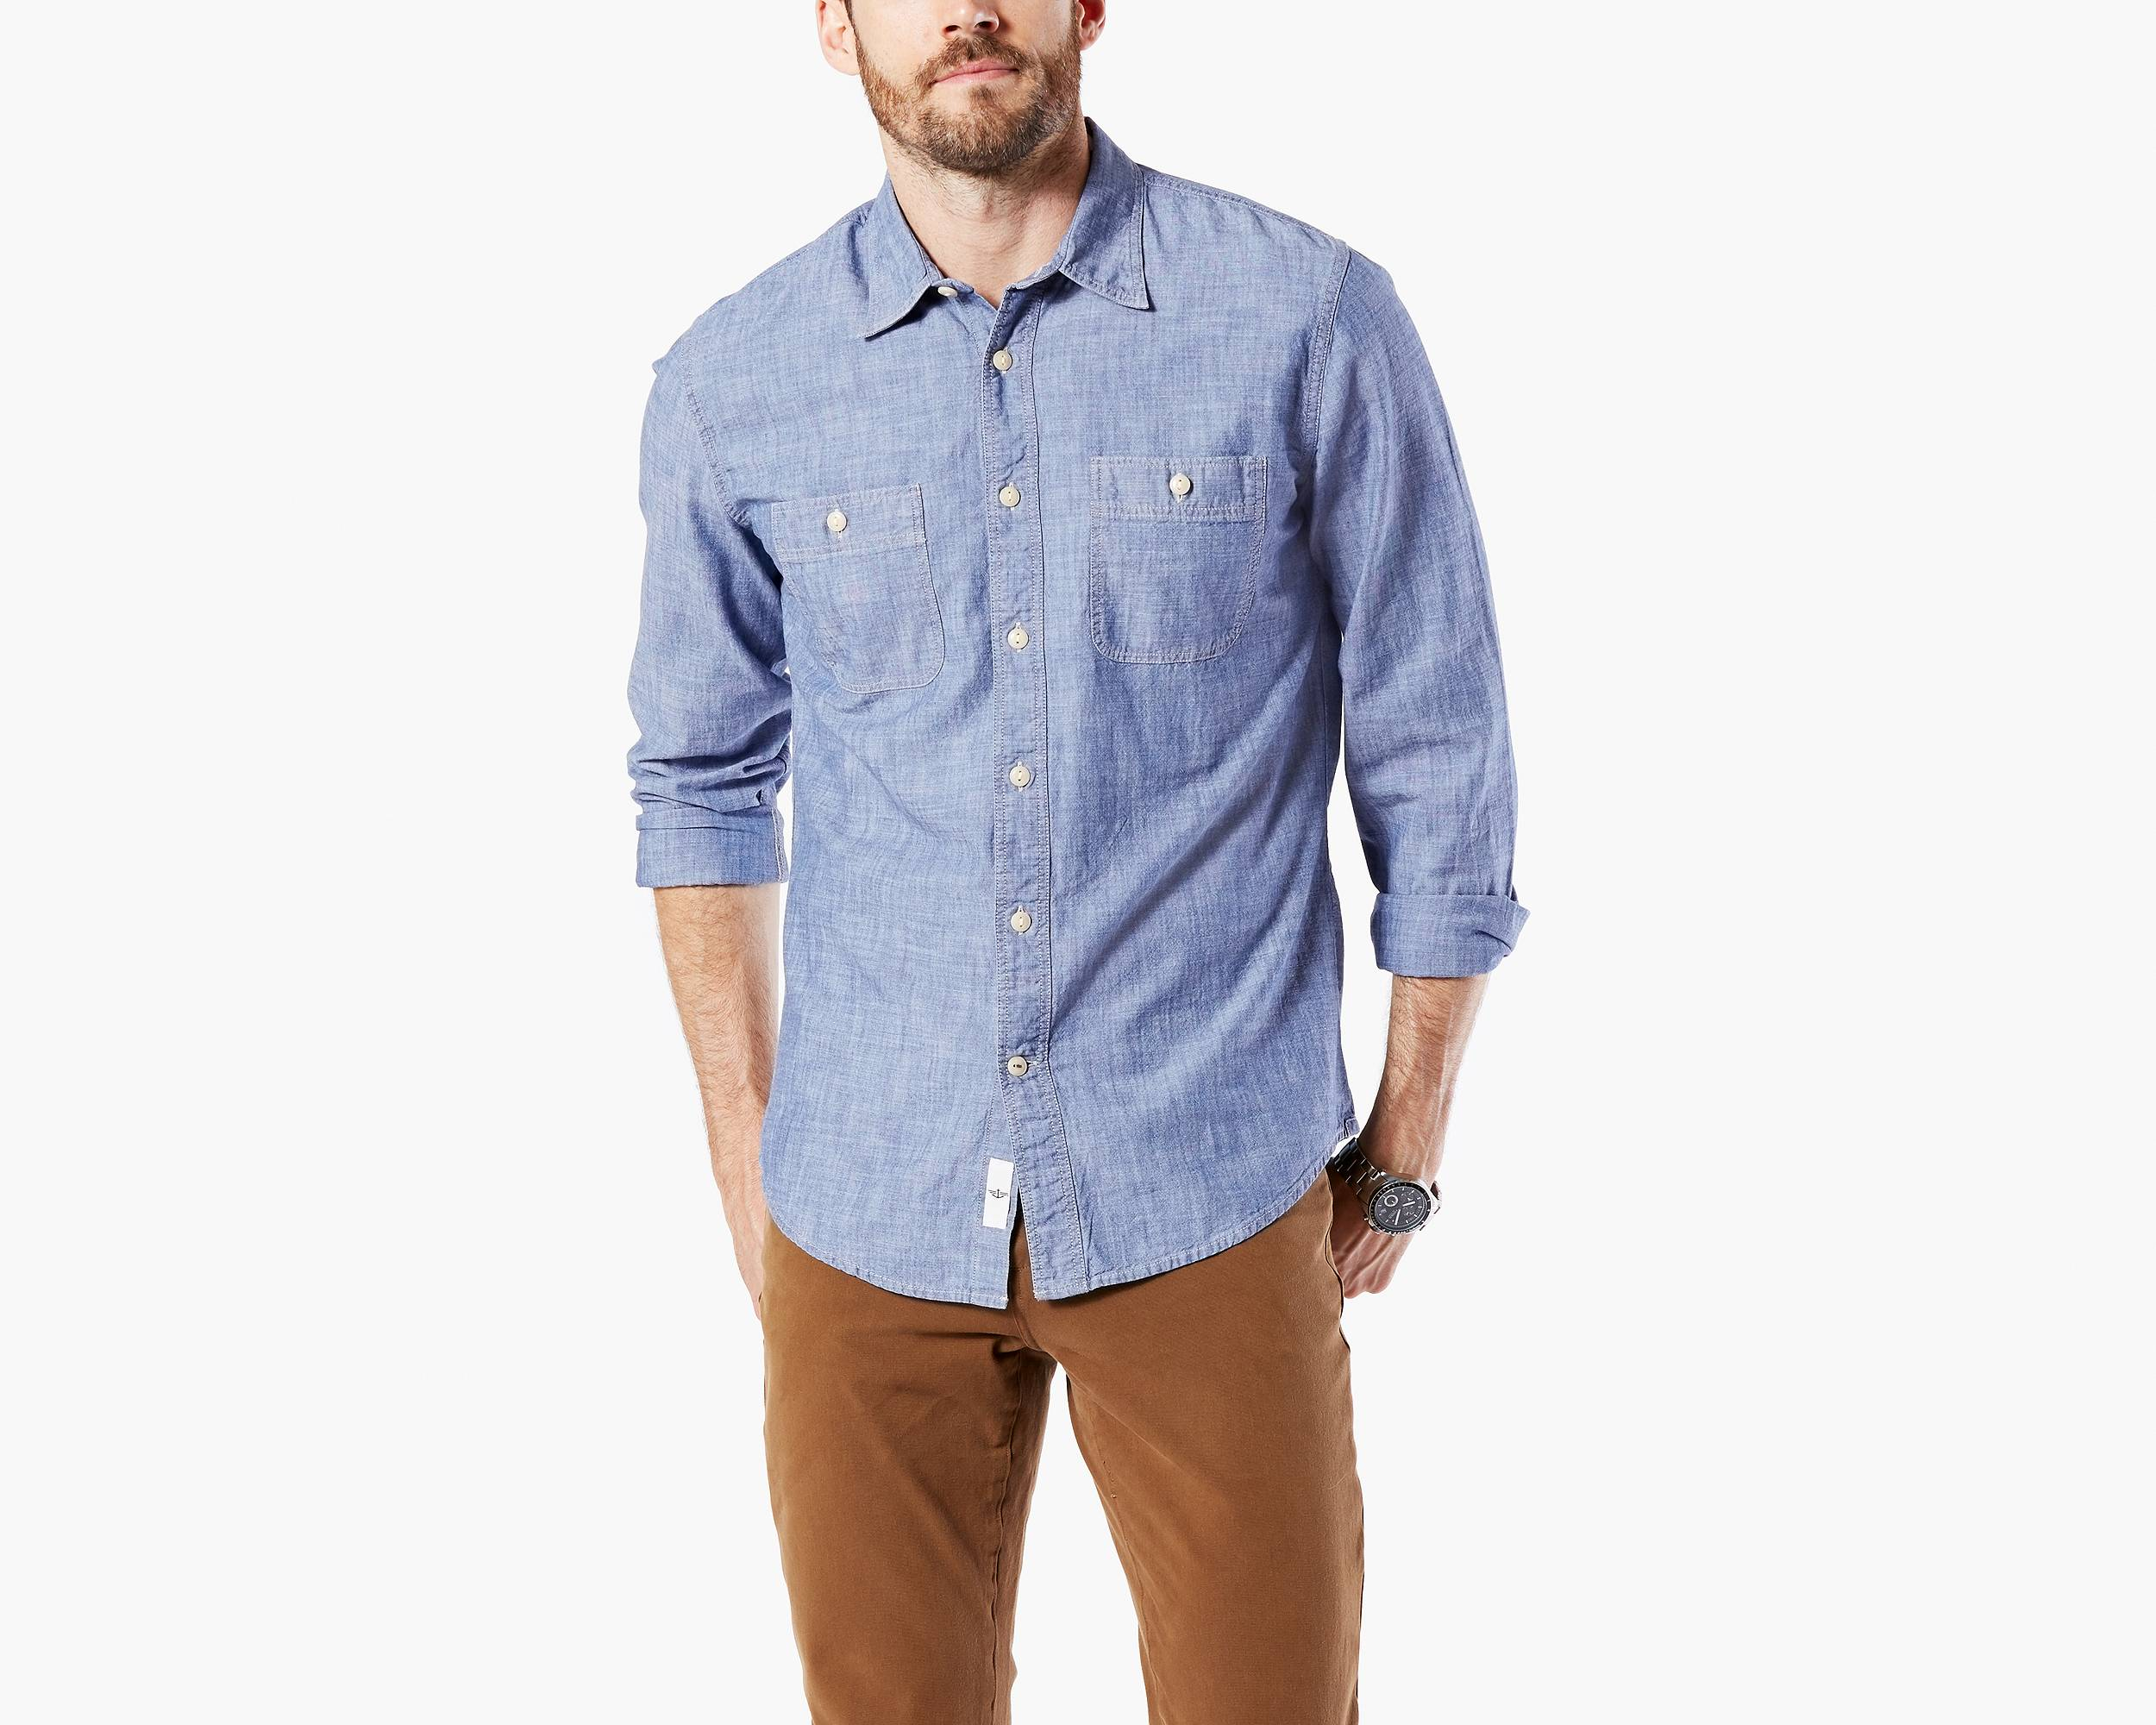 Cufflink shirt with jeans